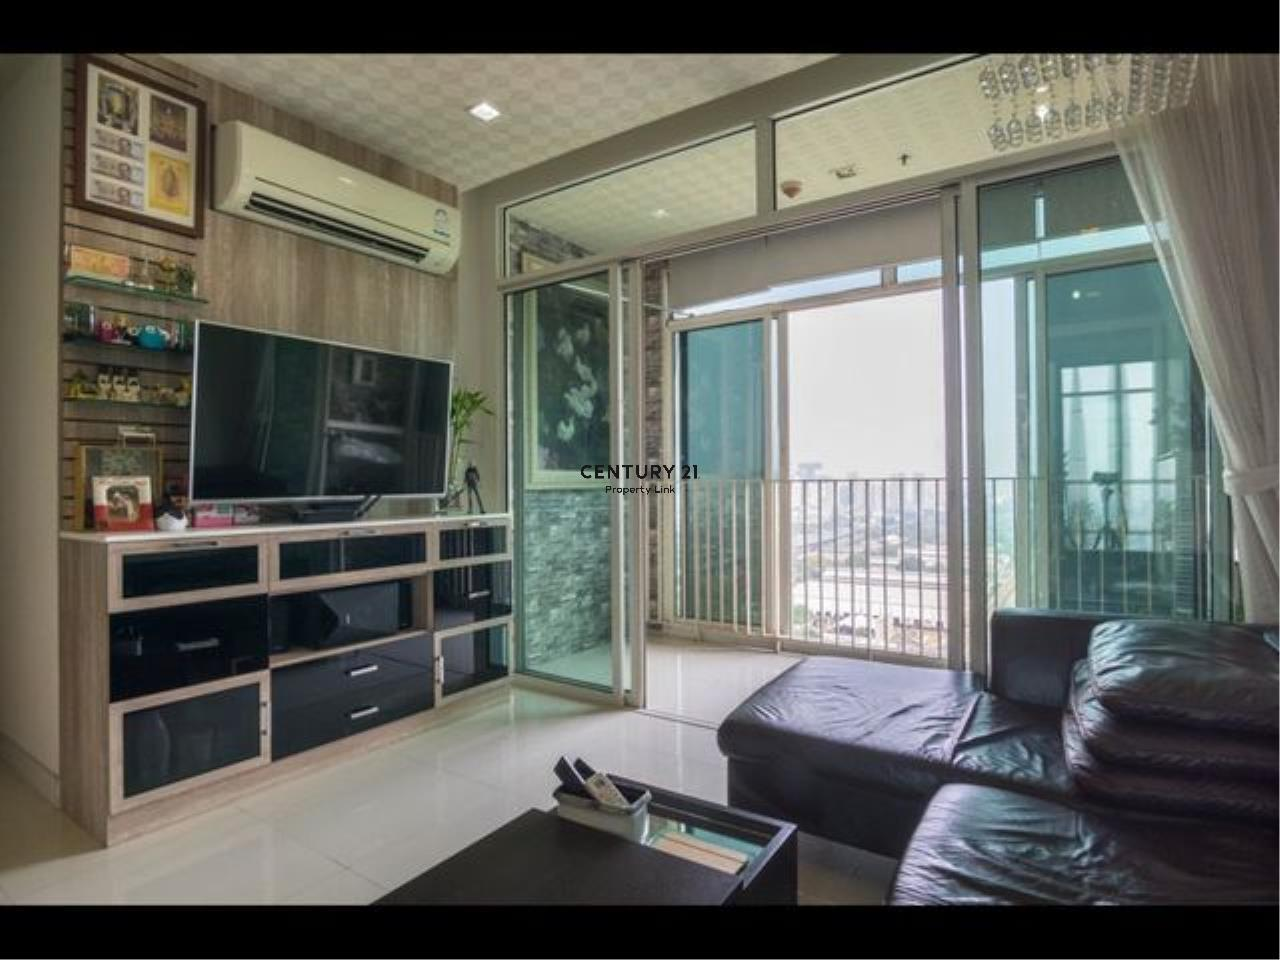 Century21 Property Link Agency's 39-CC-61435 Ideo Verve Ratchaprarop Room For Sale 2 Bedroom Nearby @ Ratchaprarop Airport Rail Link BTS Phaya Thai Sale price 9.7 MB.   2